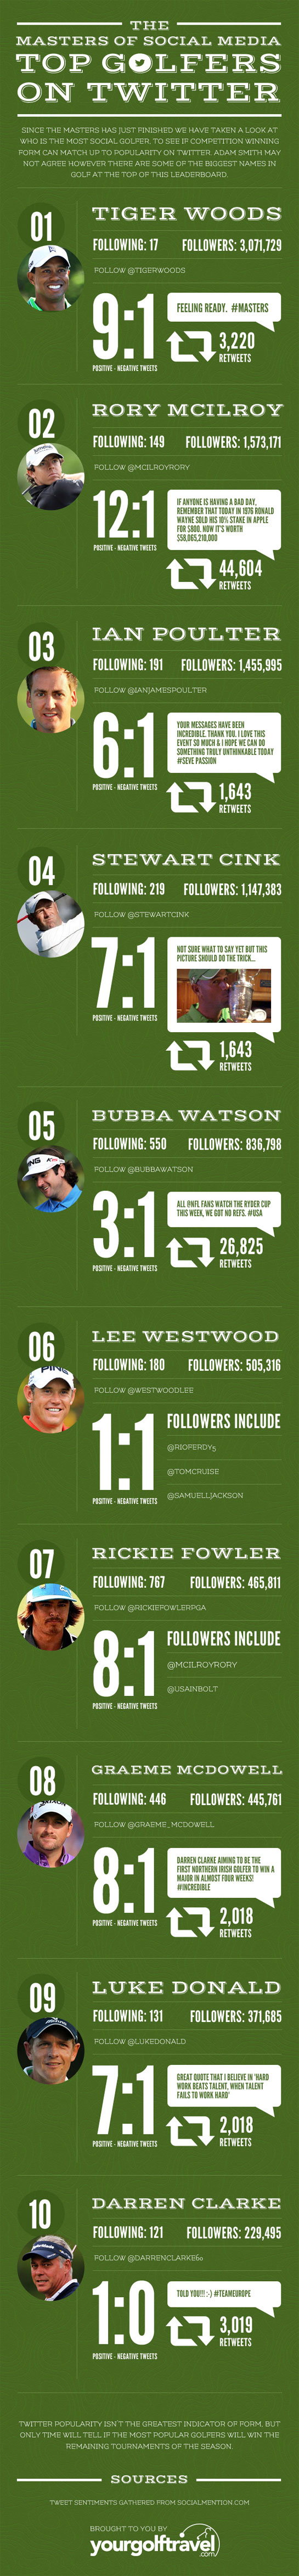 top golfers on twitter Top PGA Pros on Twitter